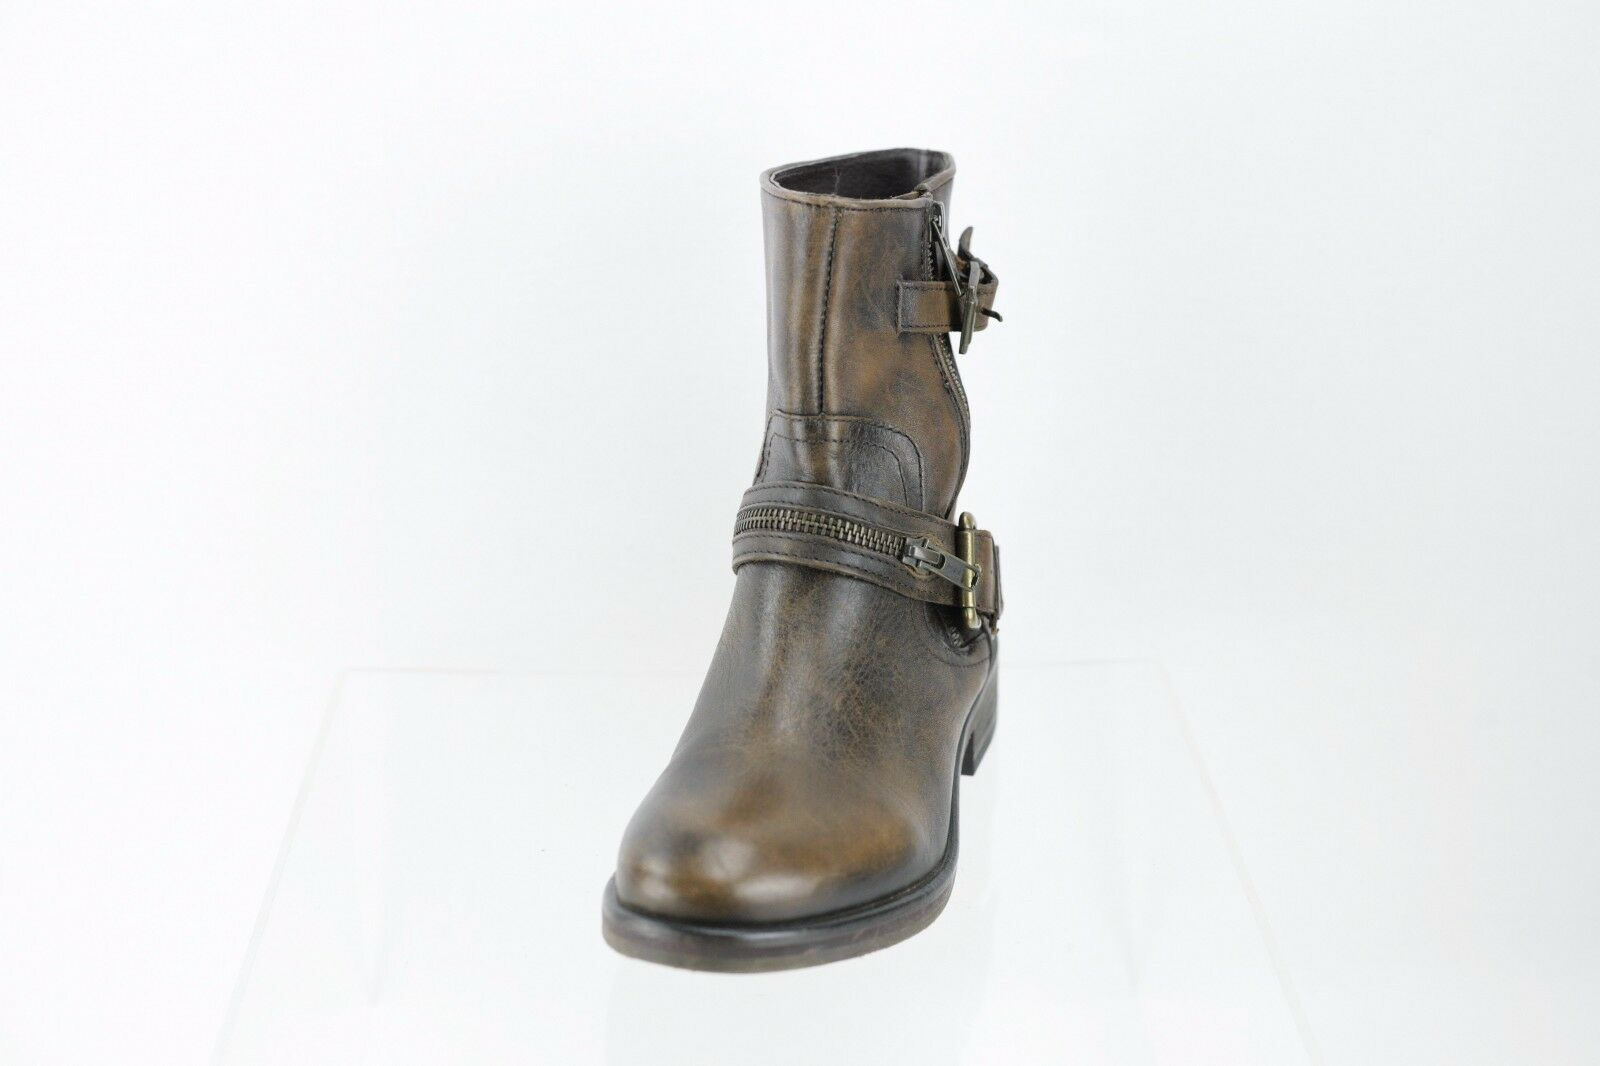 Hinge Compadre Brown Ankle Boots Women's Shoe Size 6.5 M NEW